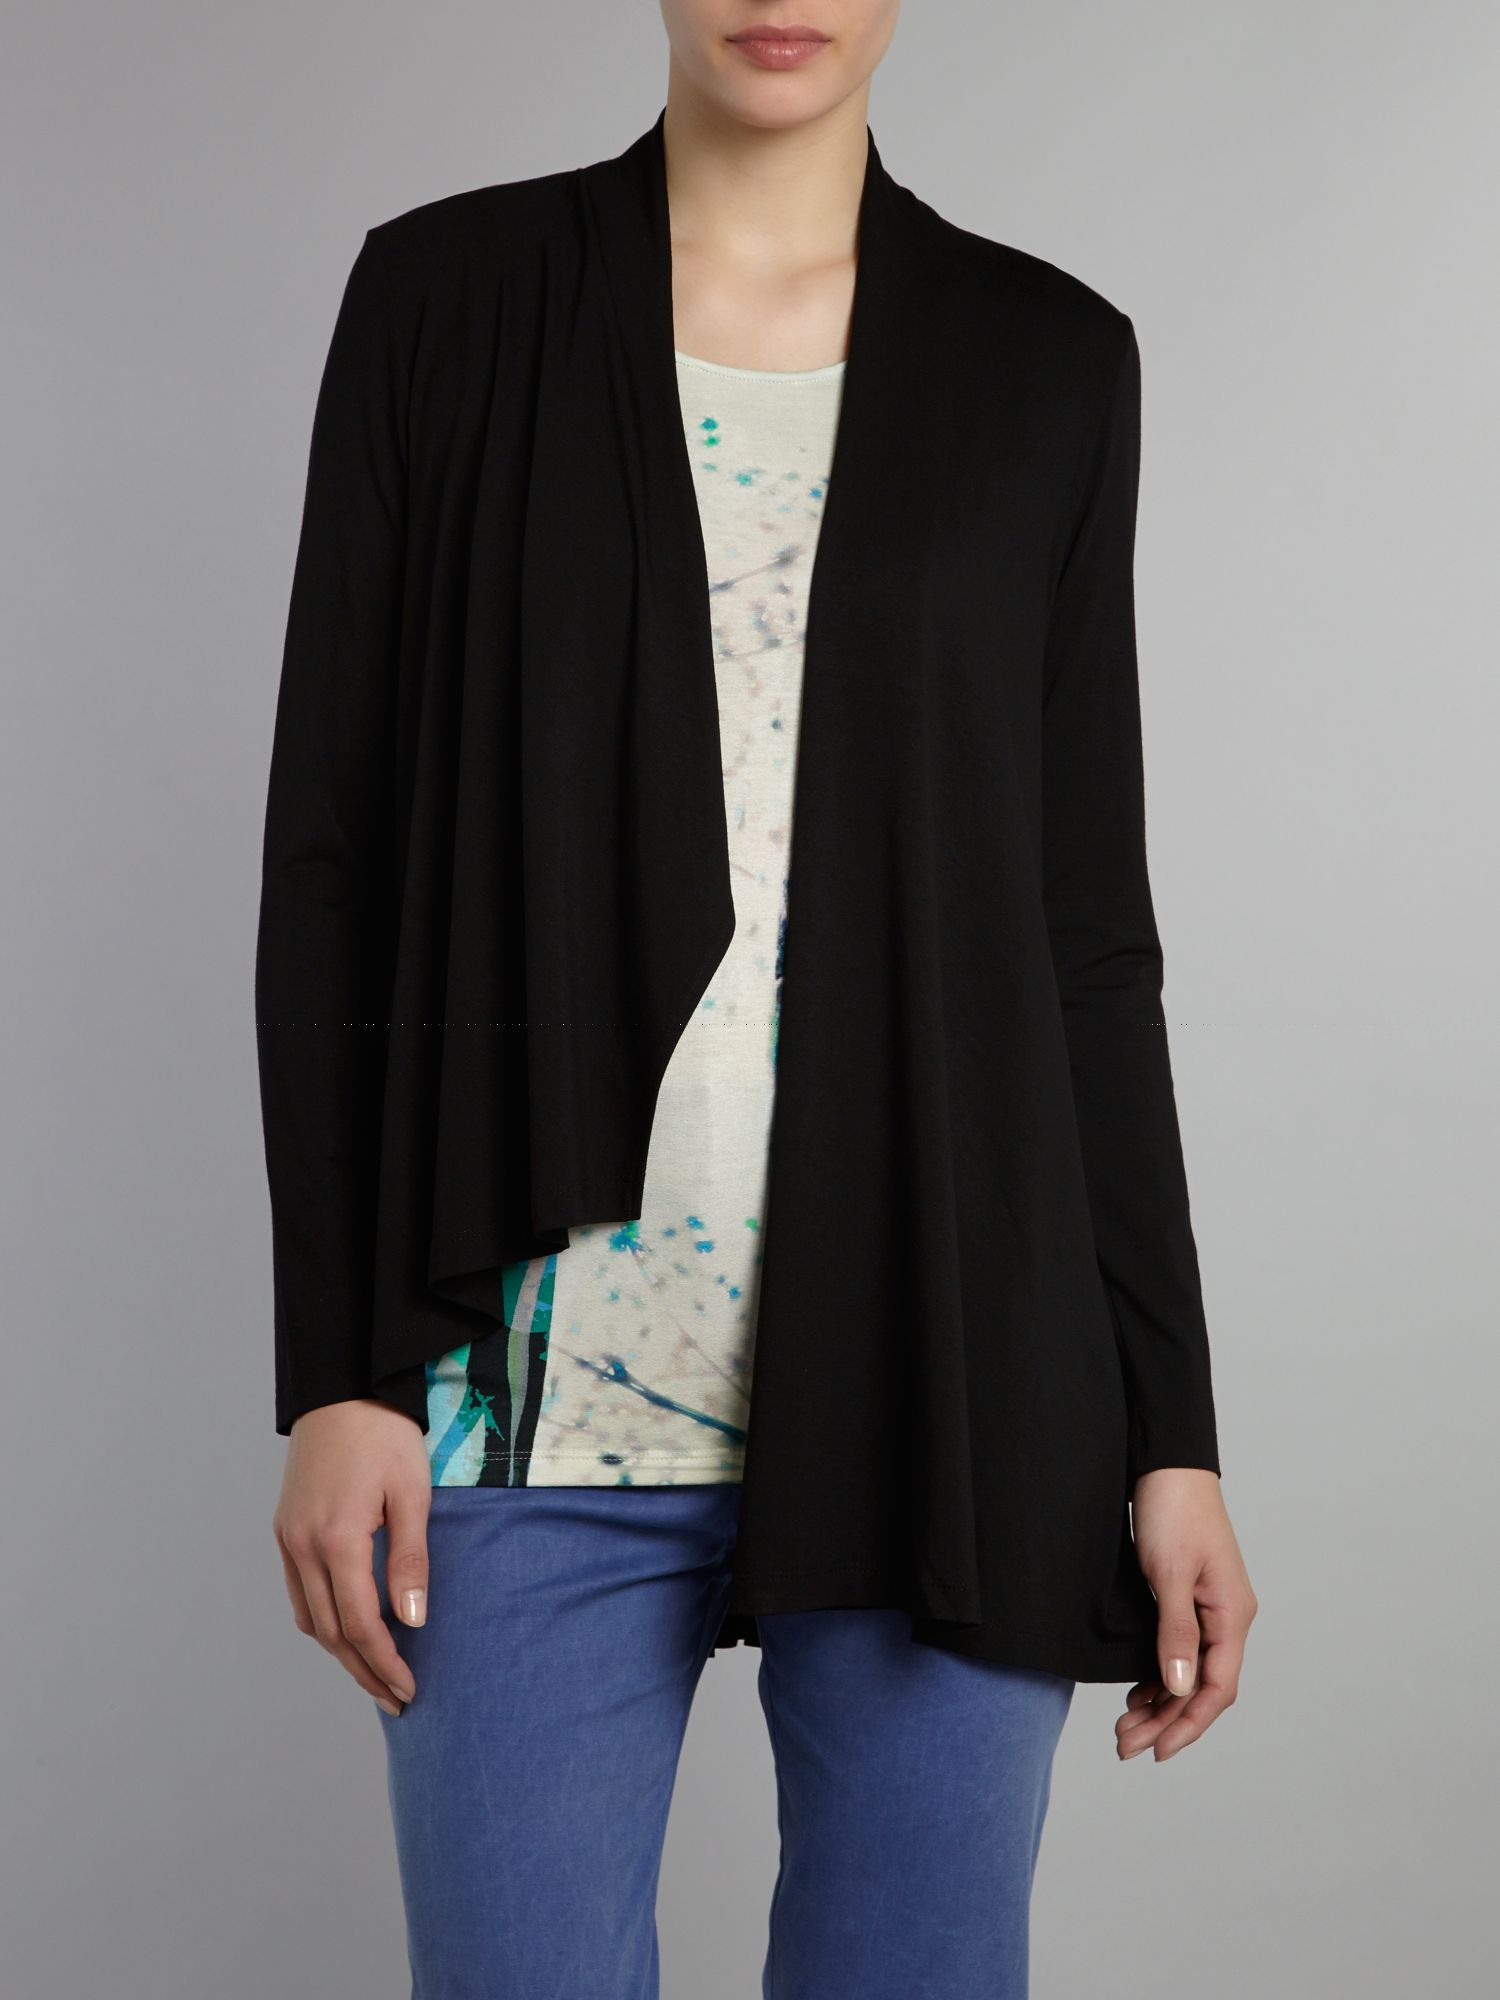 Pleat back drape jacket